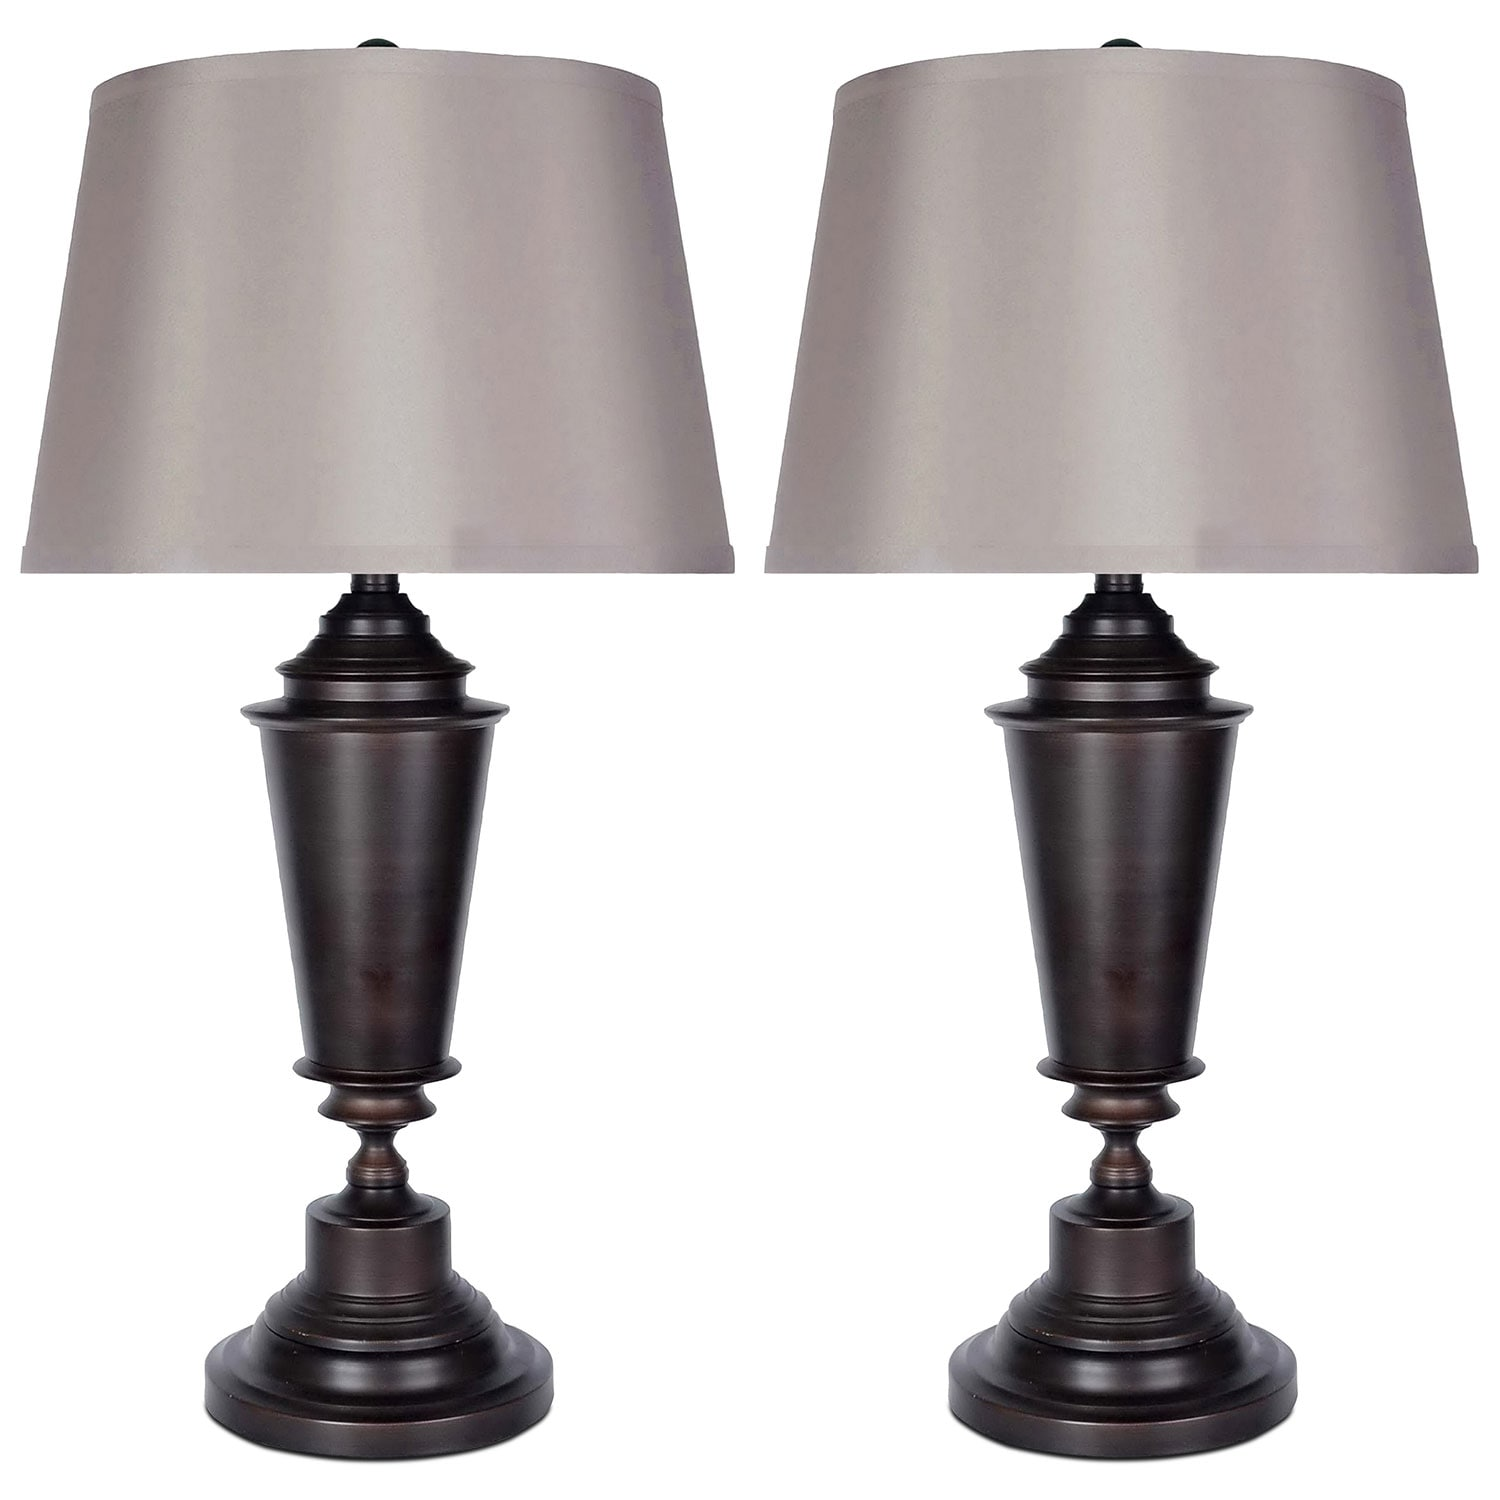 Oil-Rubbed Bronze 2-Piece Table Lamps Set with Silk Shade